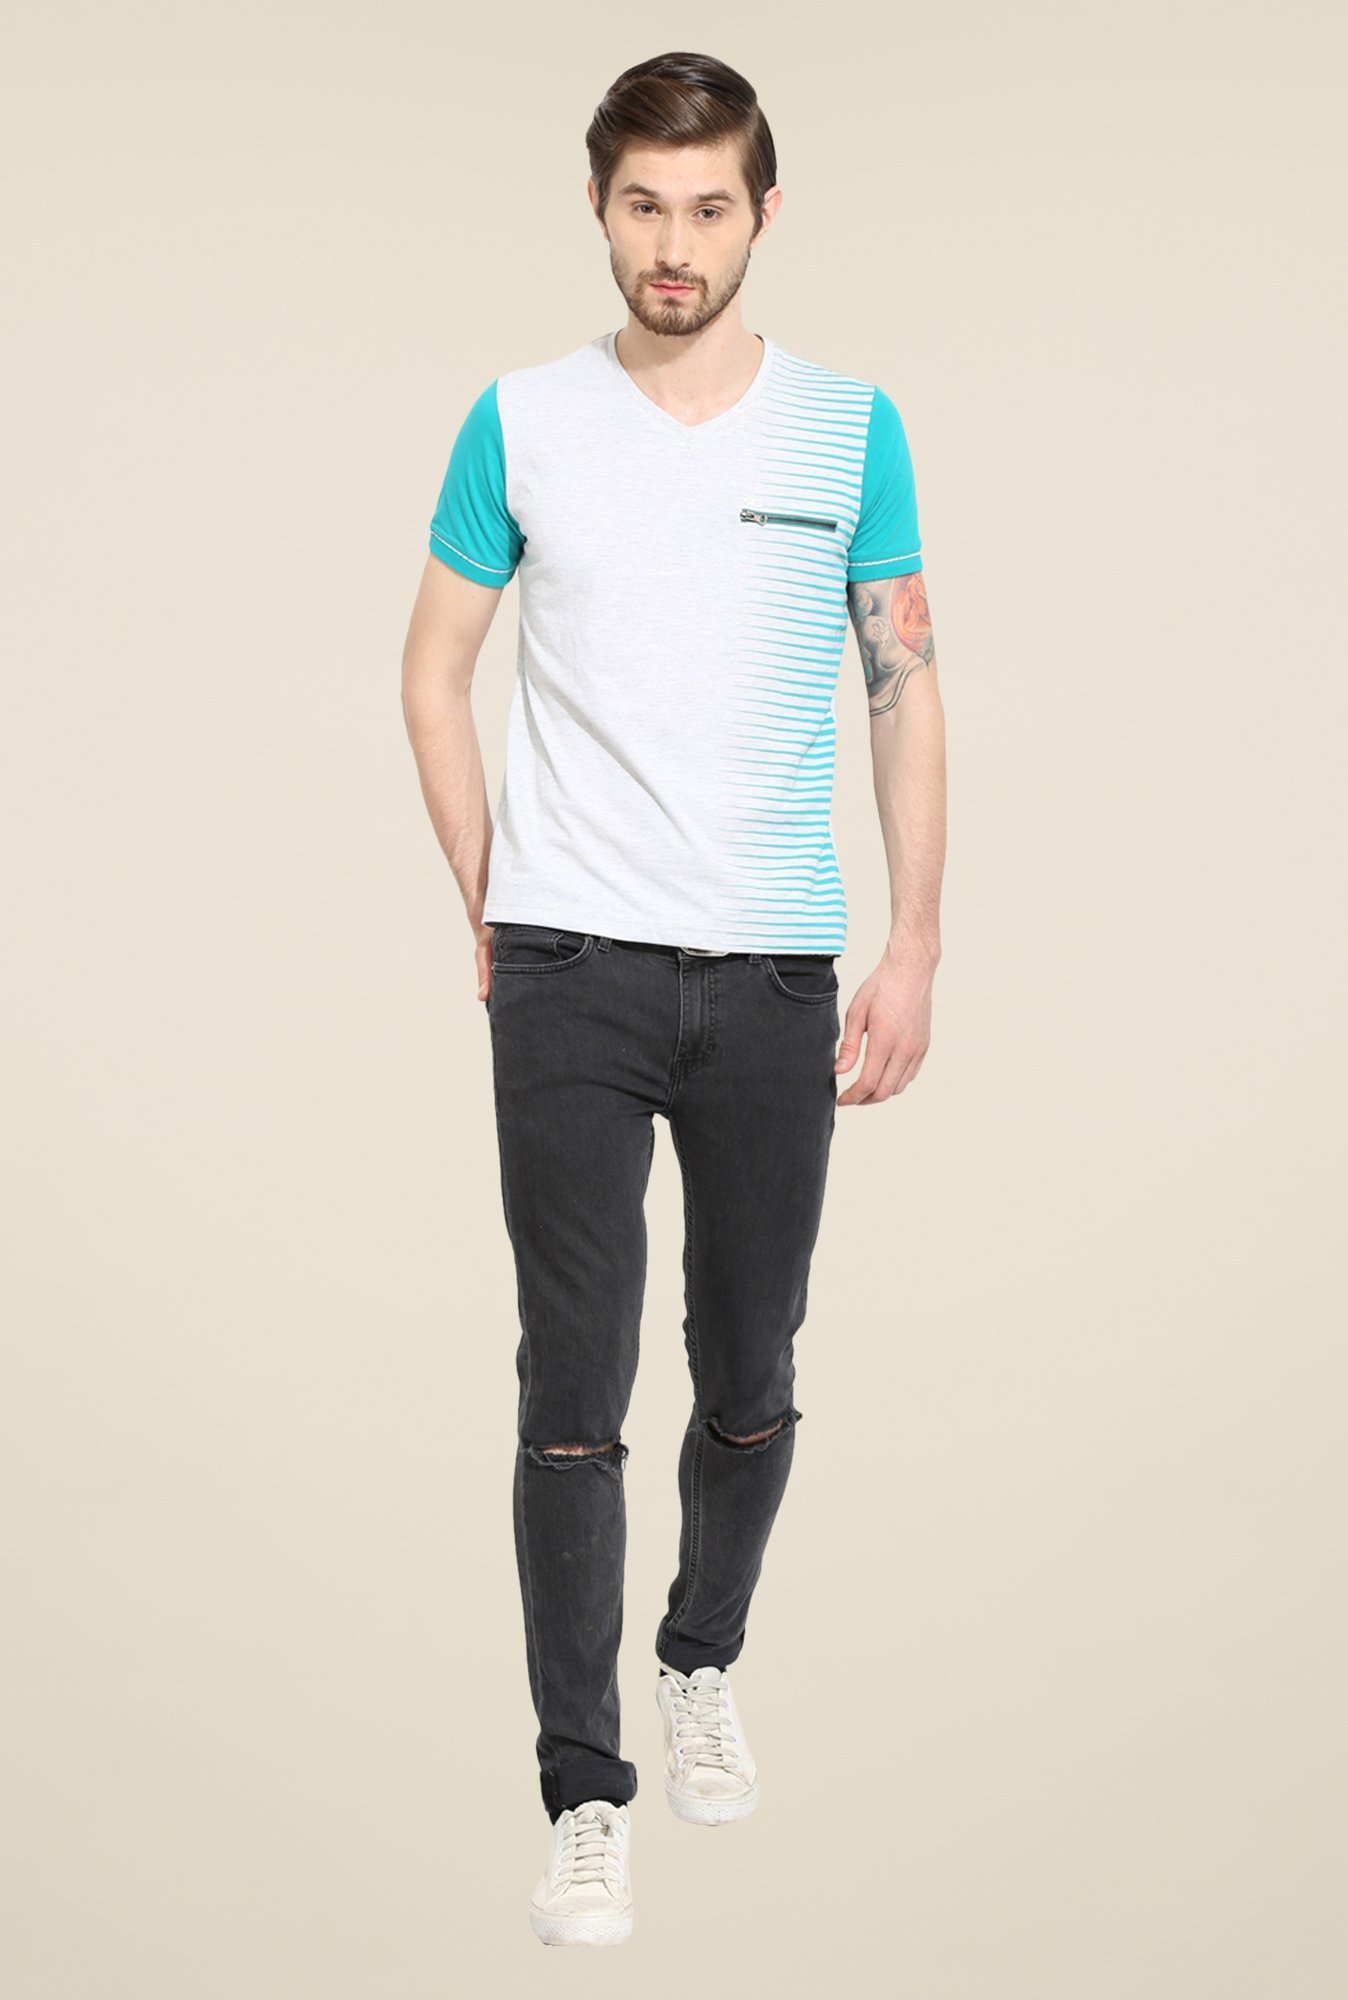 Duke Stardust Off White Solid T-shirt